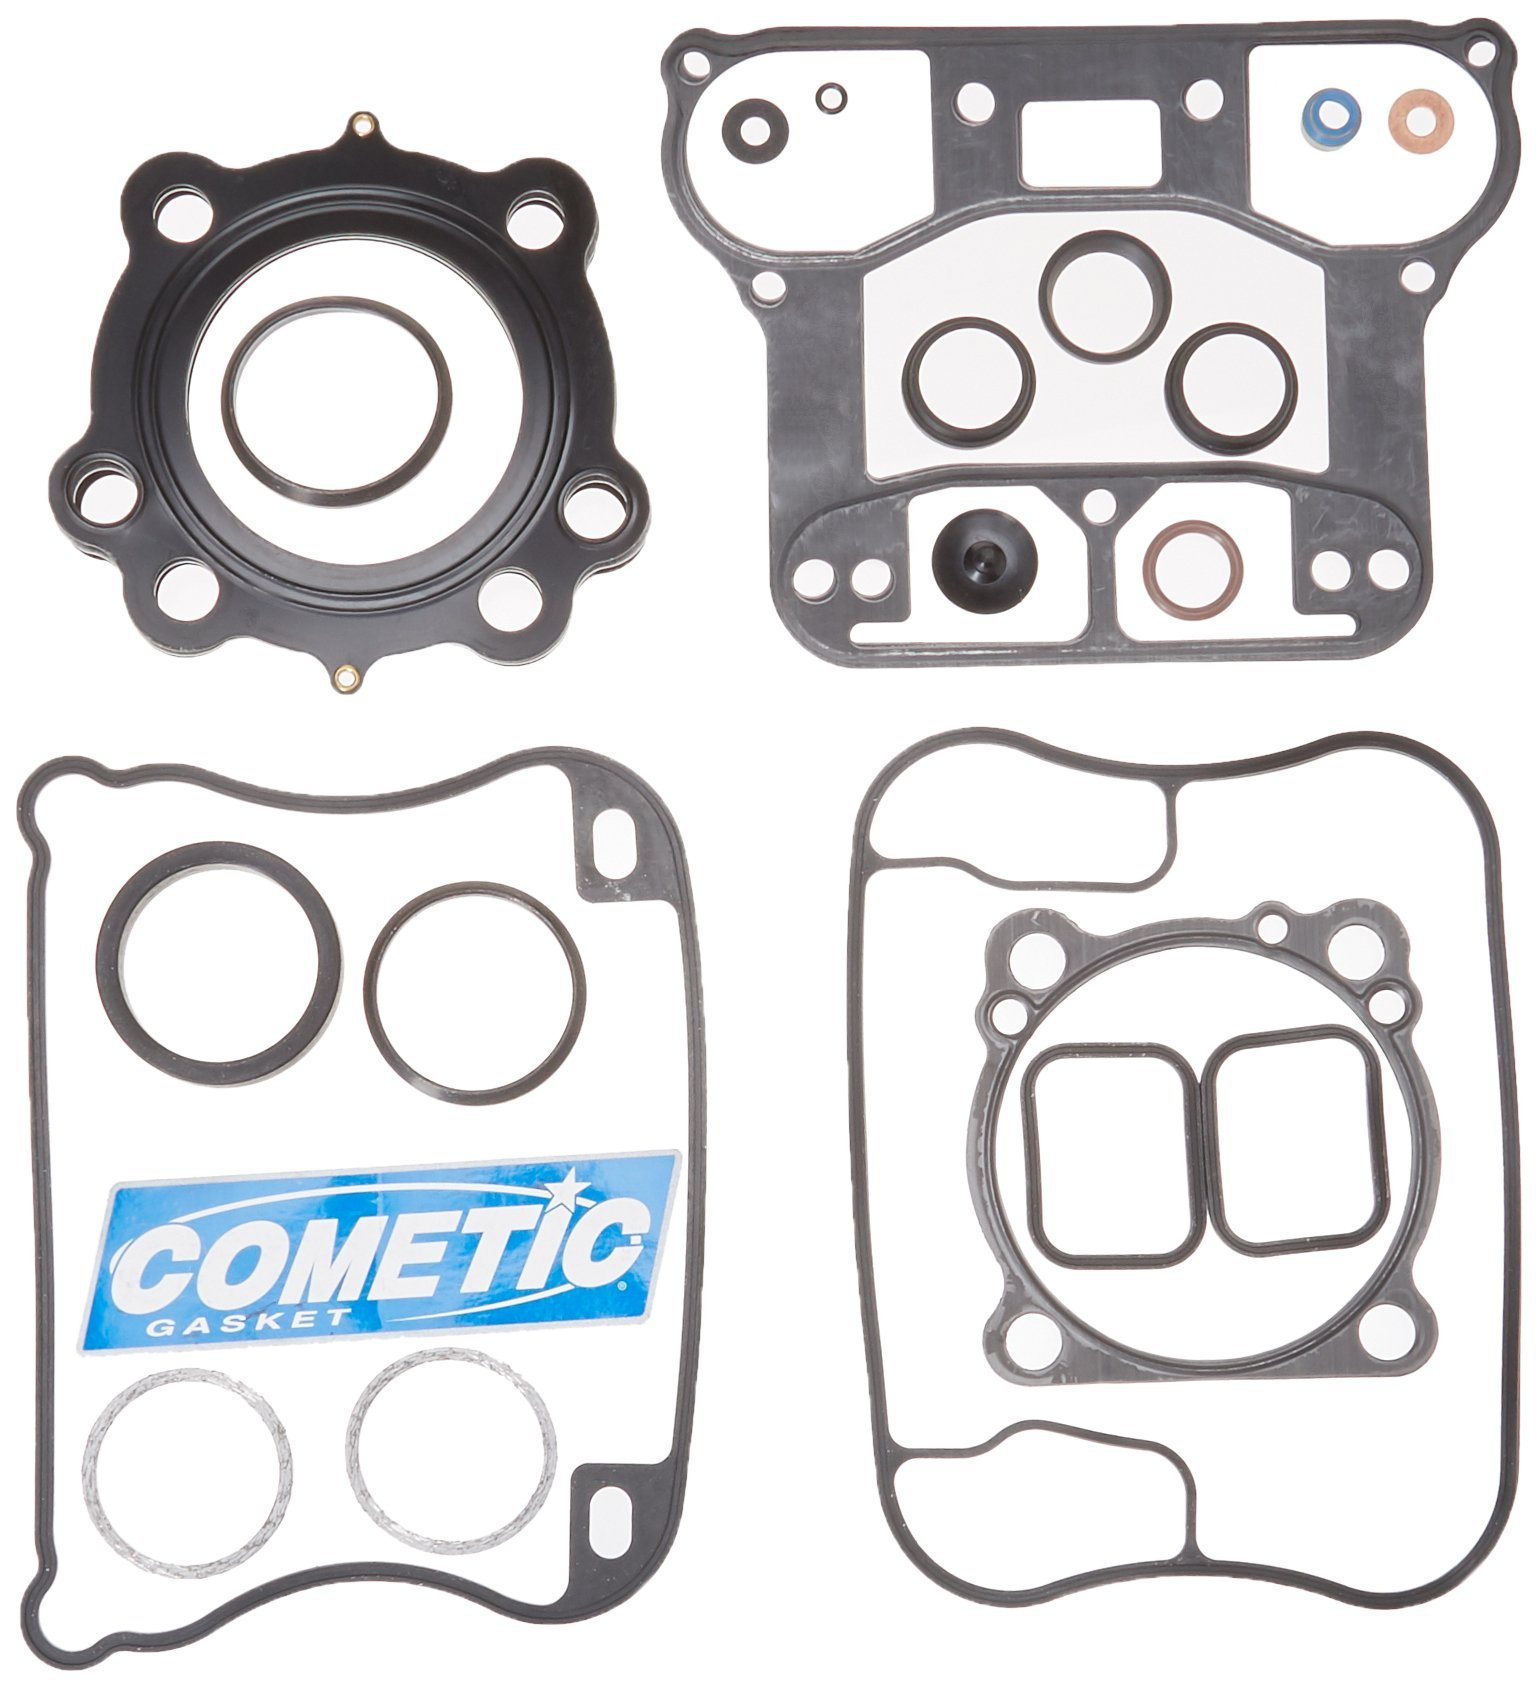 Cometic C9760 Top End Gasket Kit/Clutch Cover Gasket by Cometic Gasket (Image #1)